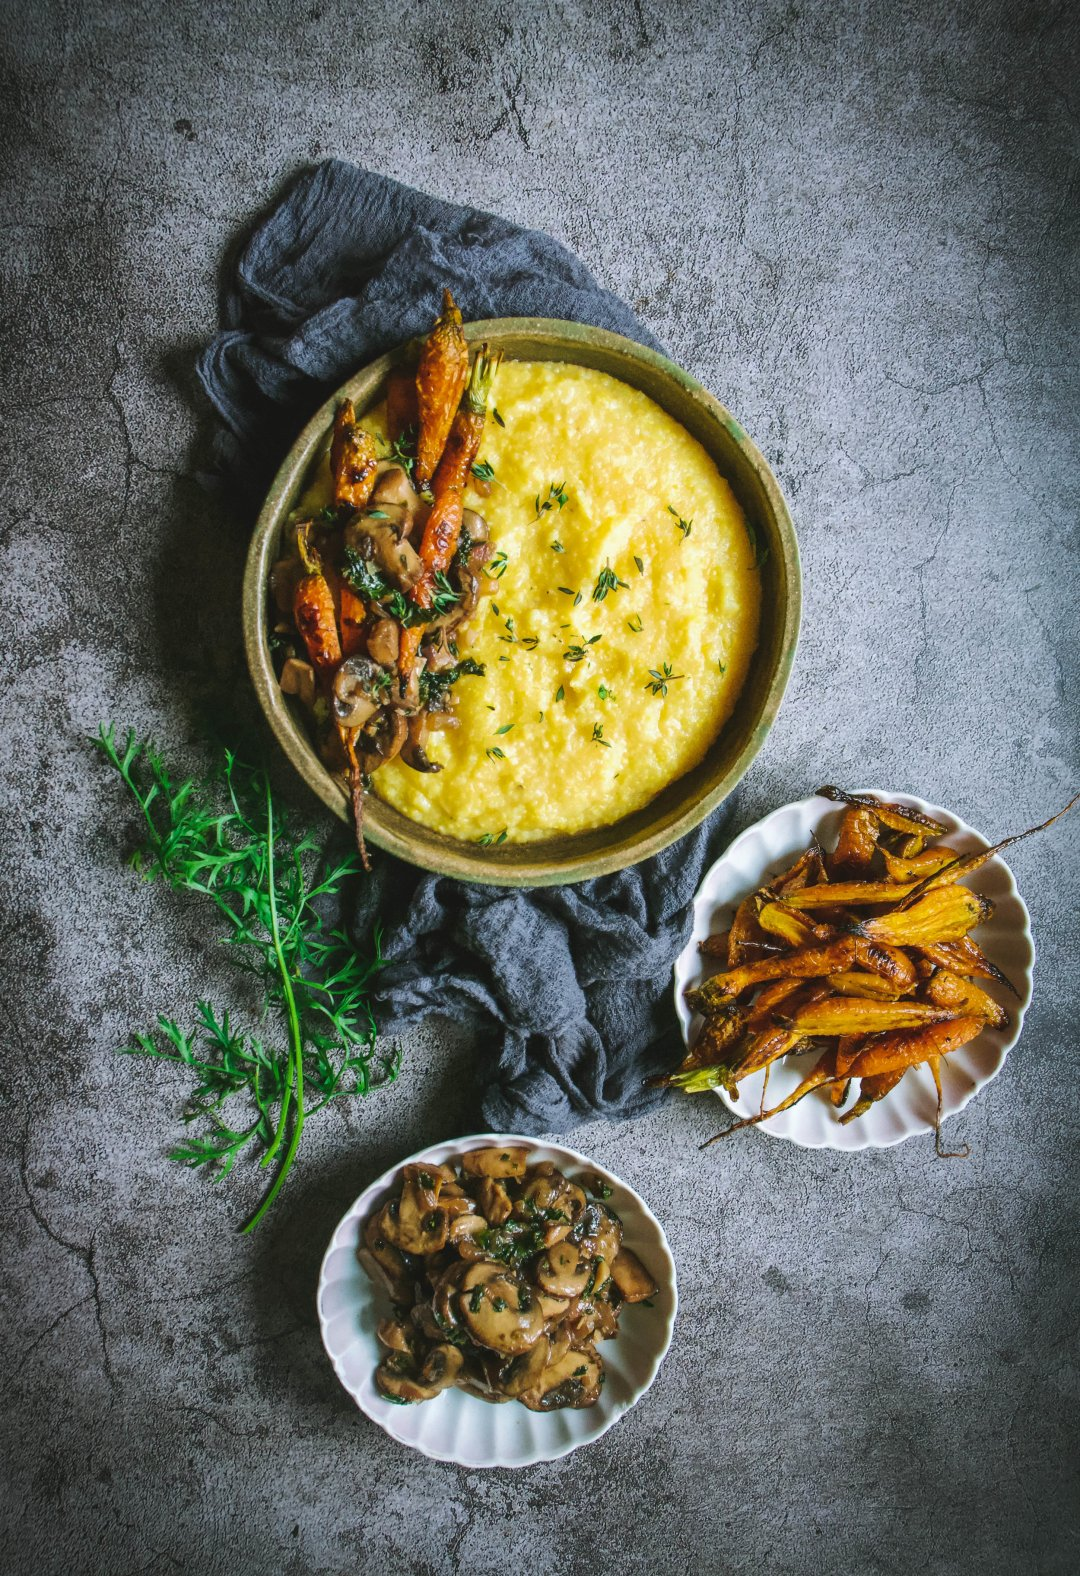 polenta with roasted mushrooms and carrots